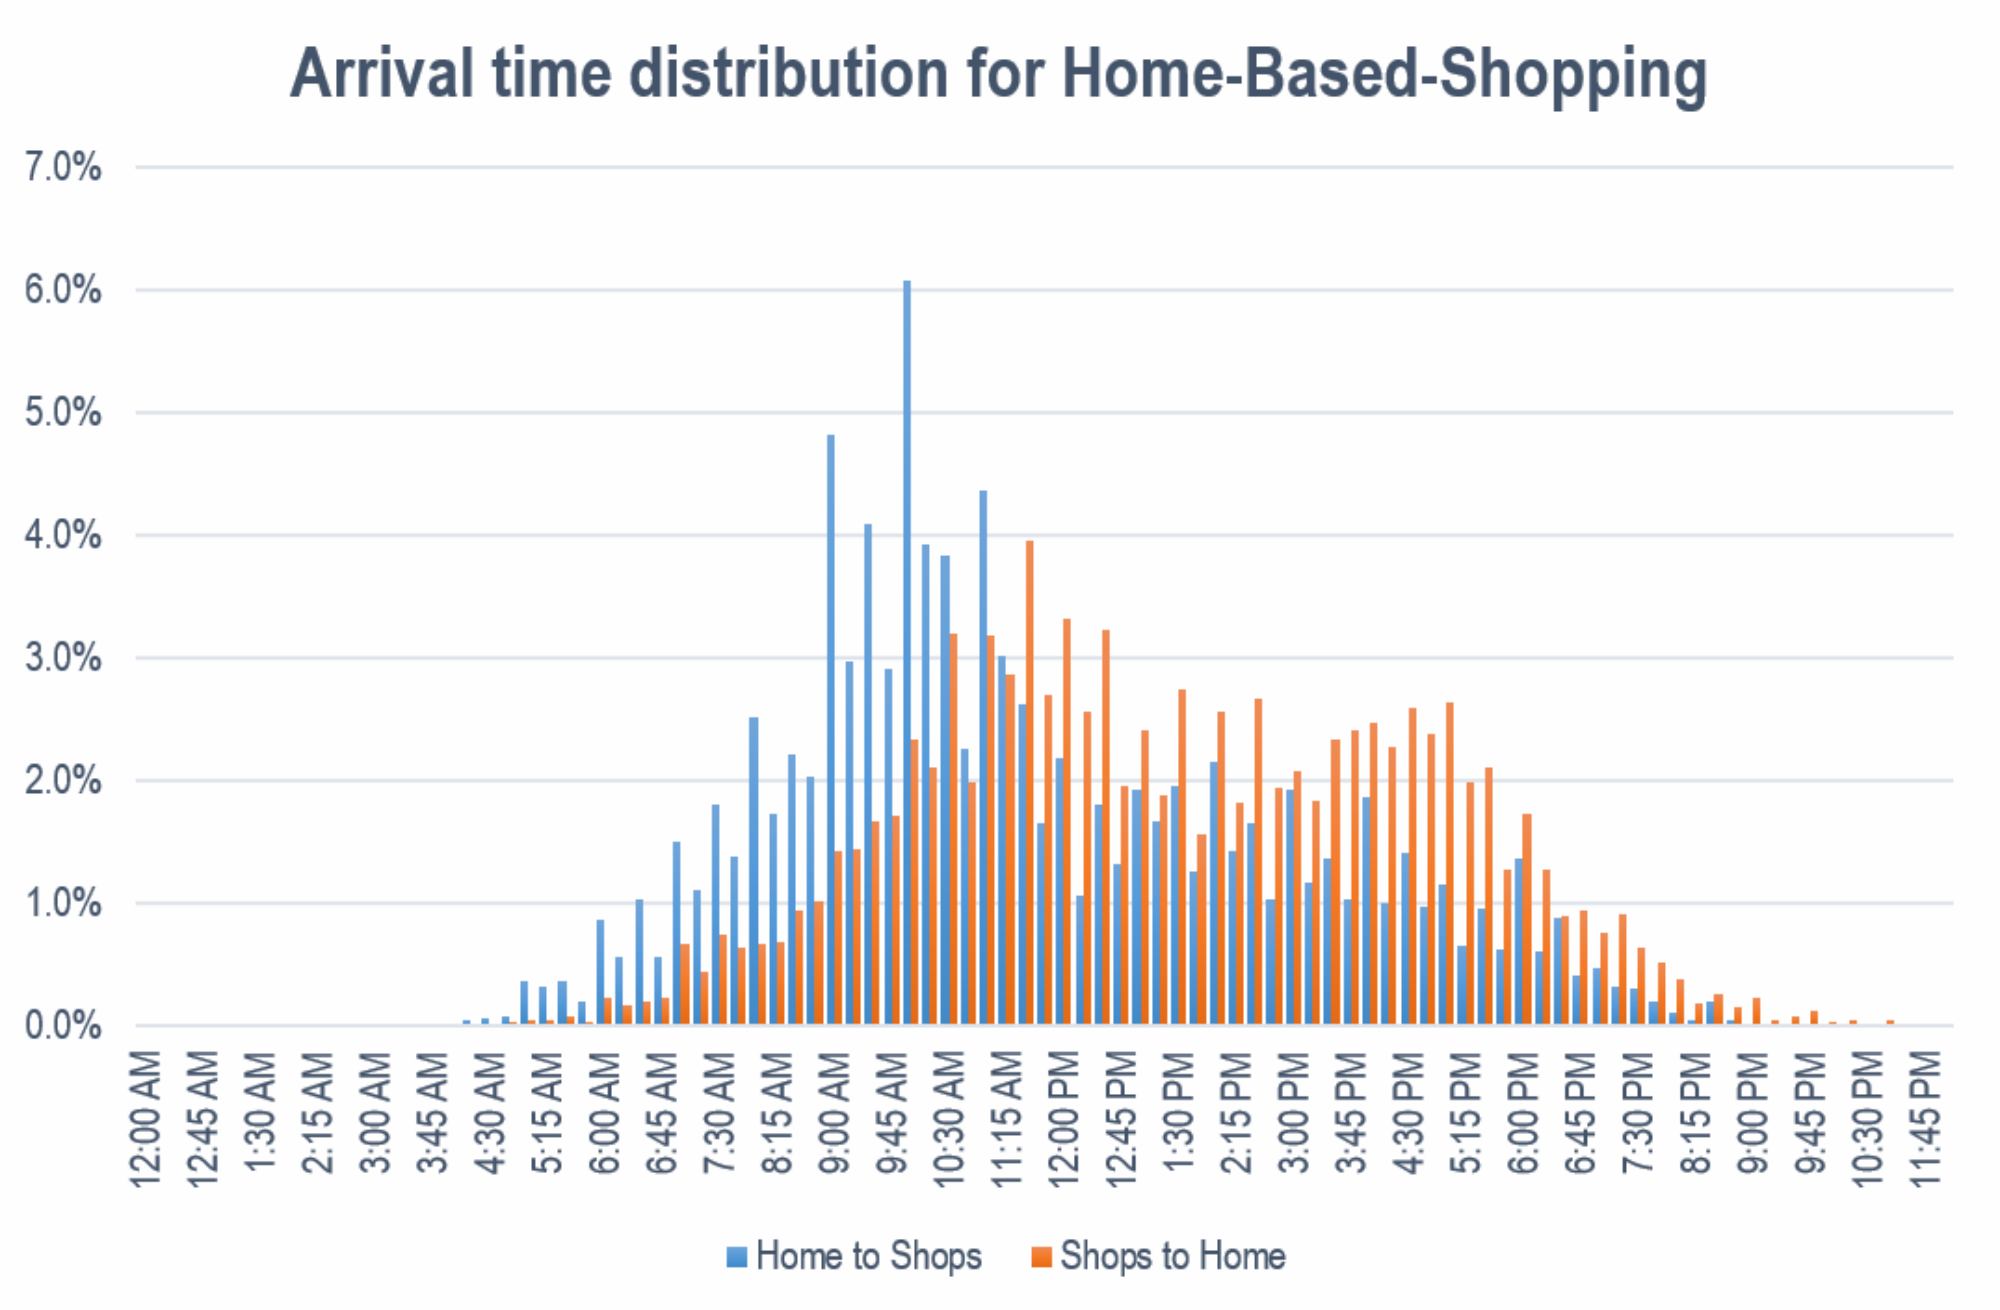 Figure: Arrival time distribution for Home-Based-Shopping